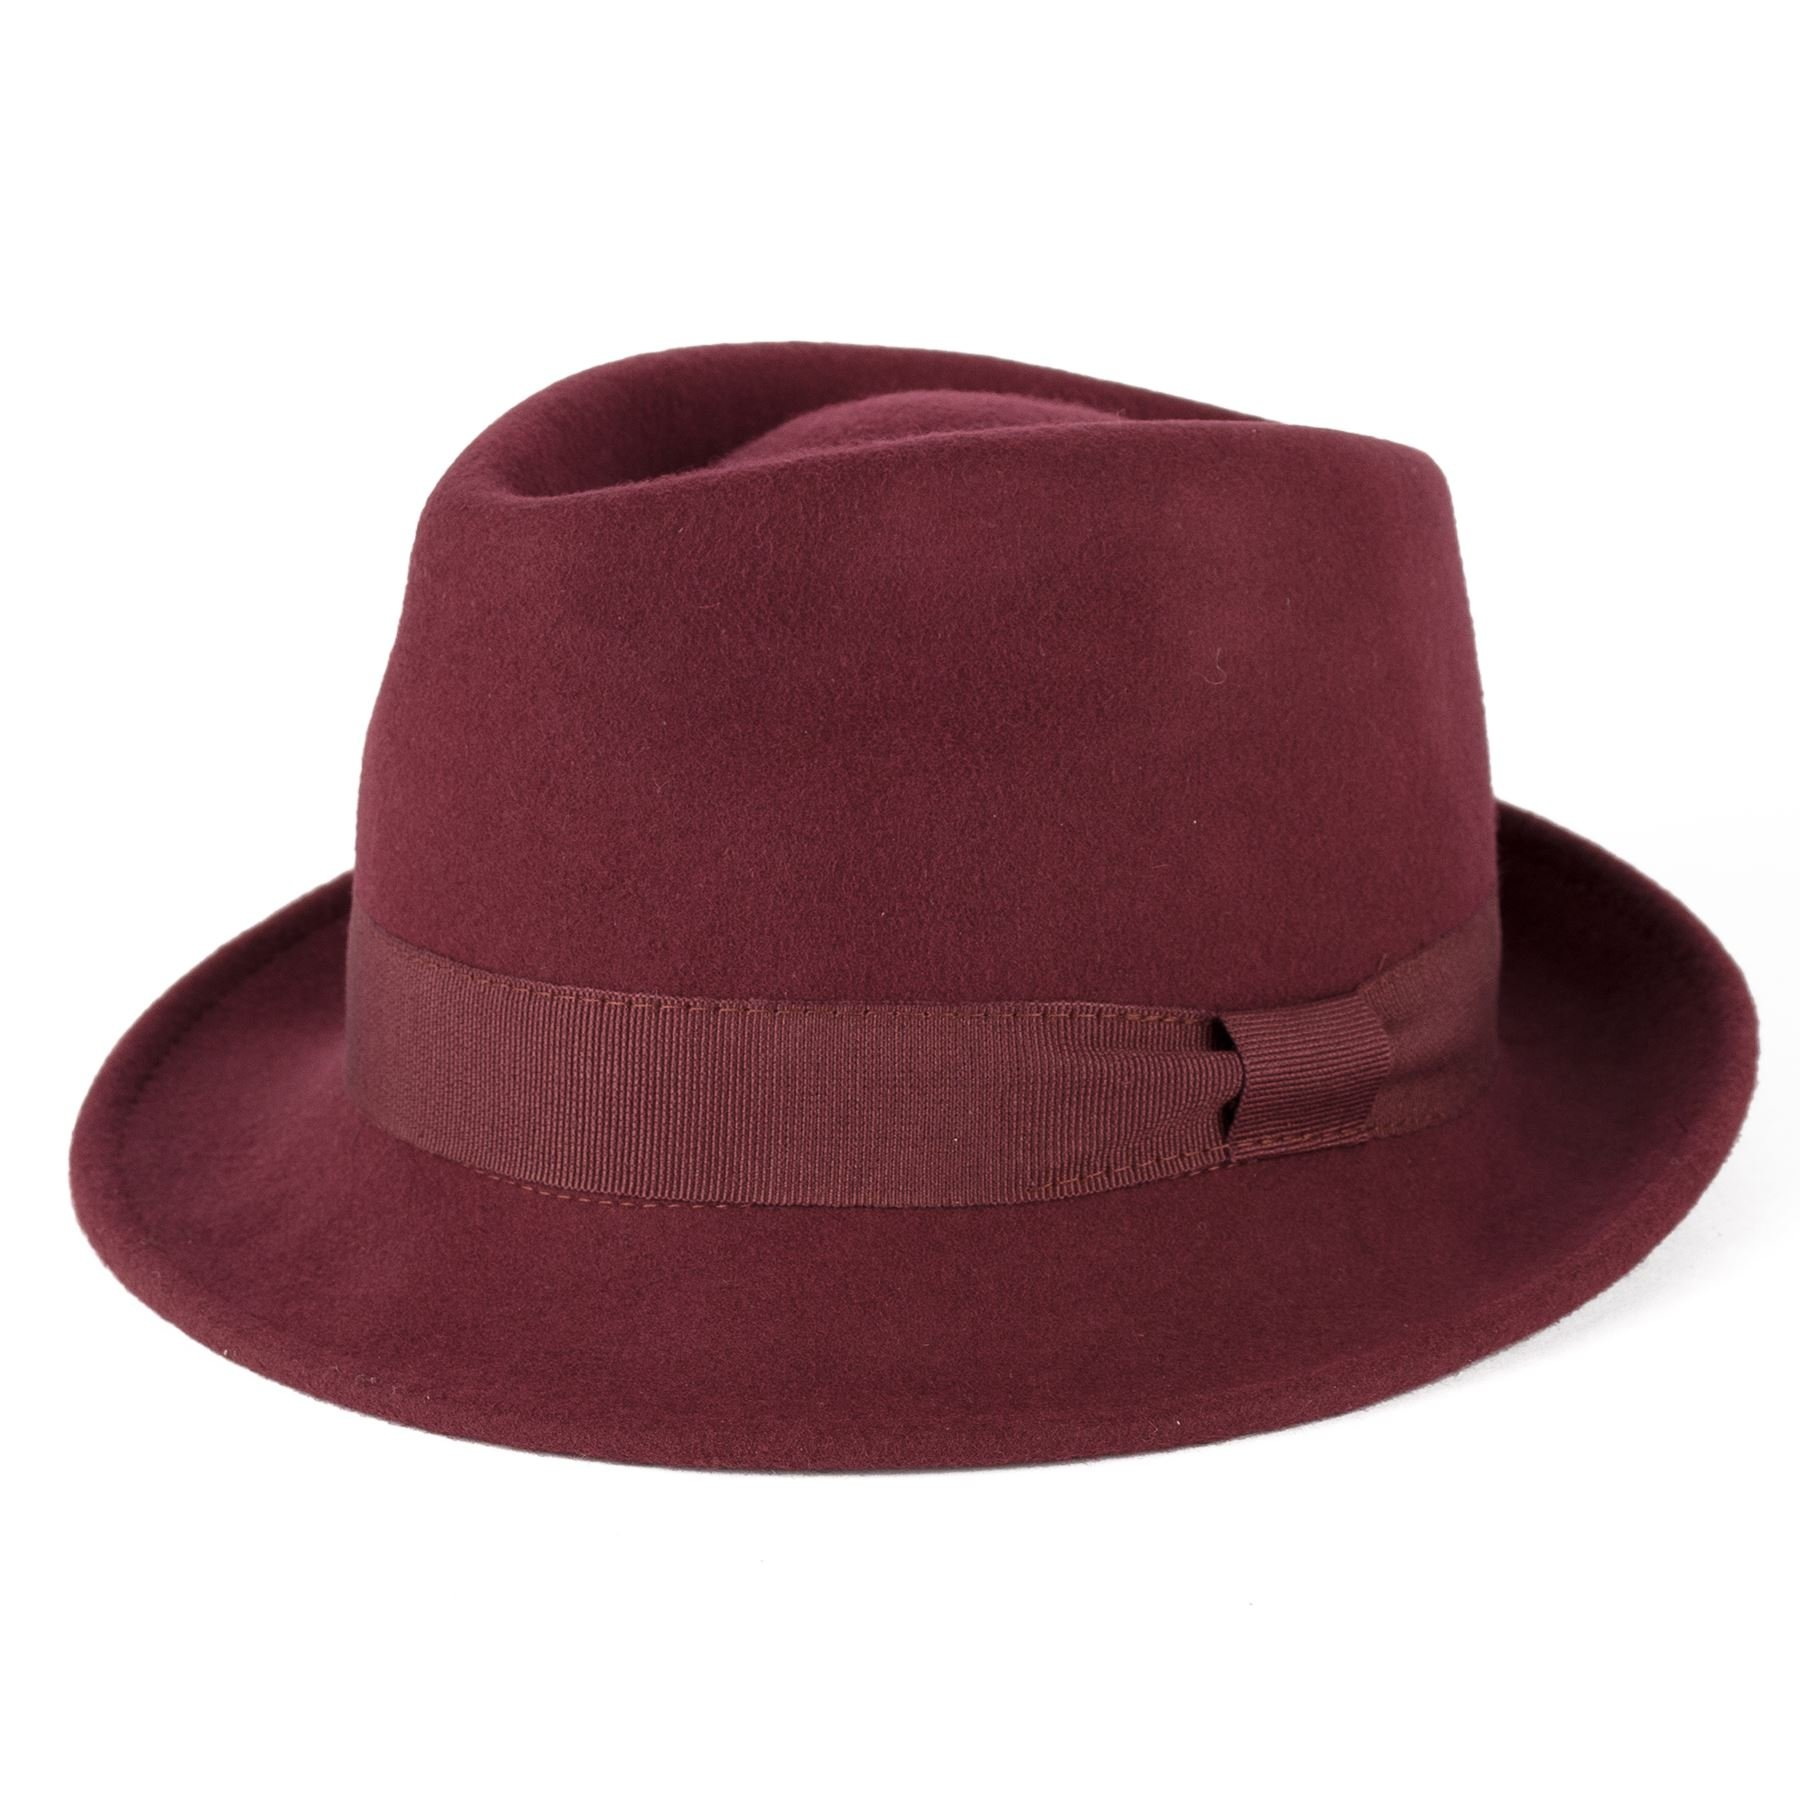 Unisex Made In Italy Hand Made Fine Felt Trilby Hat With Grosgrain Bow Style Band - Maroon/Red Wine (55/S)